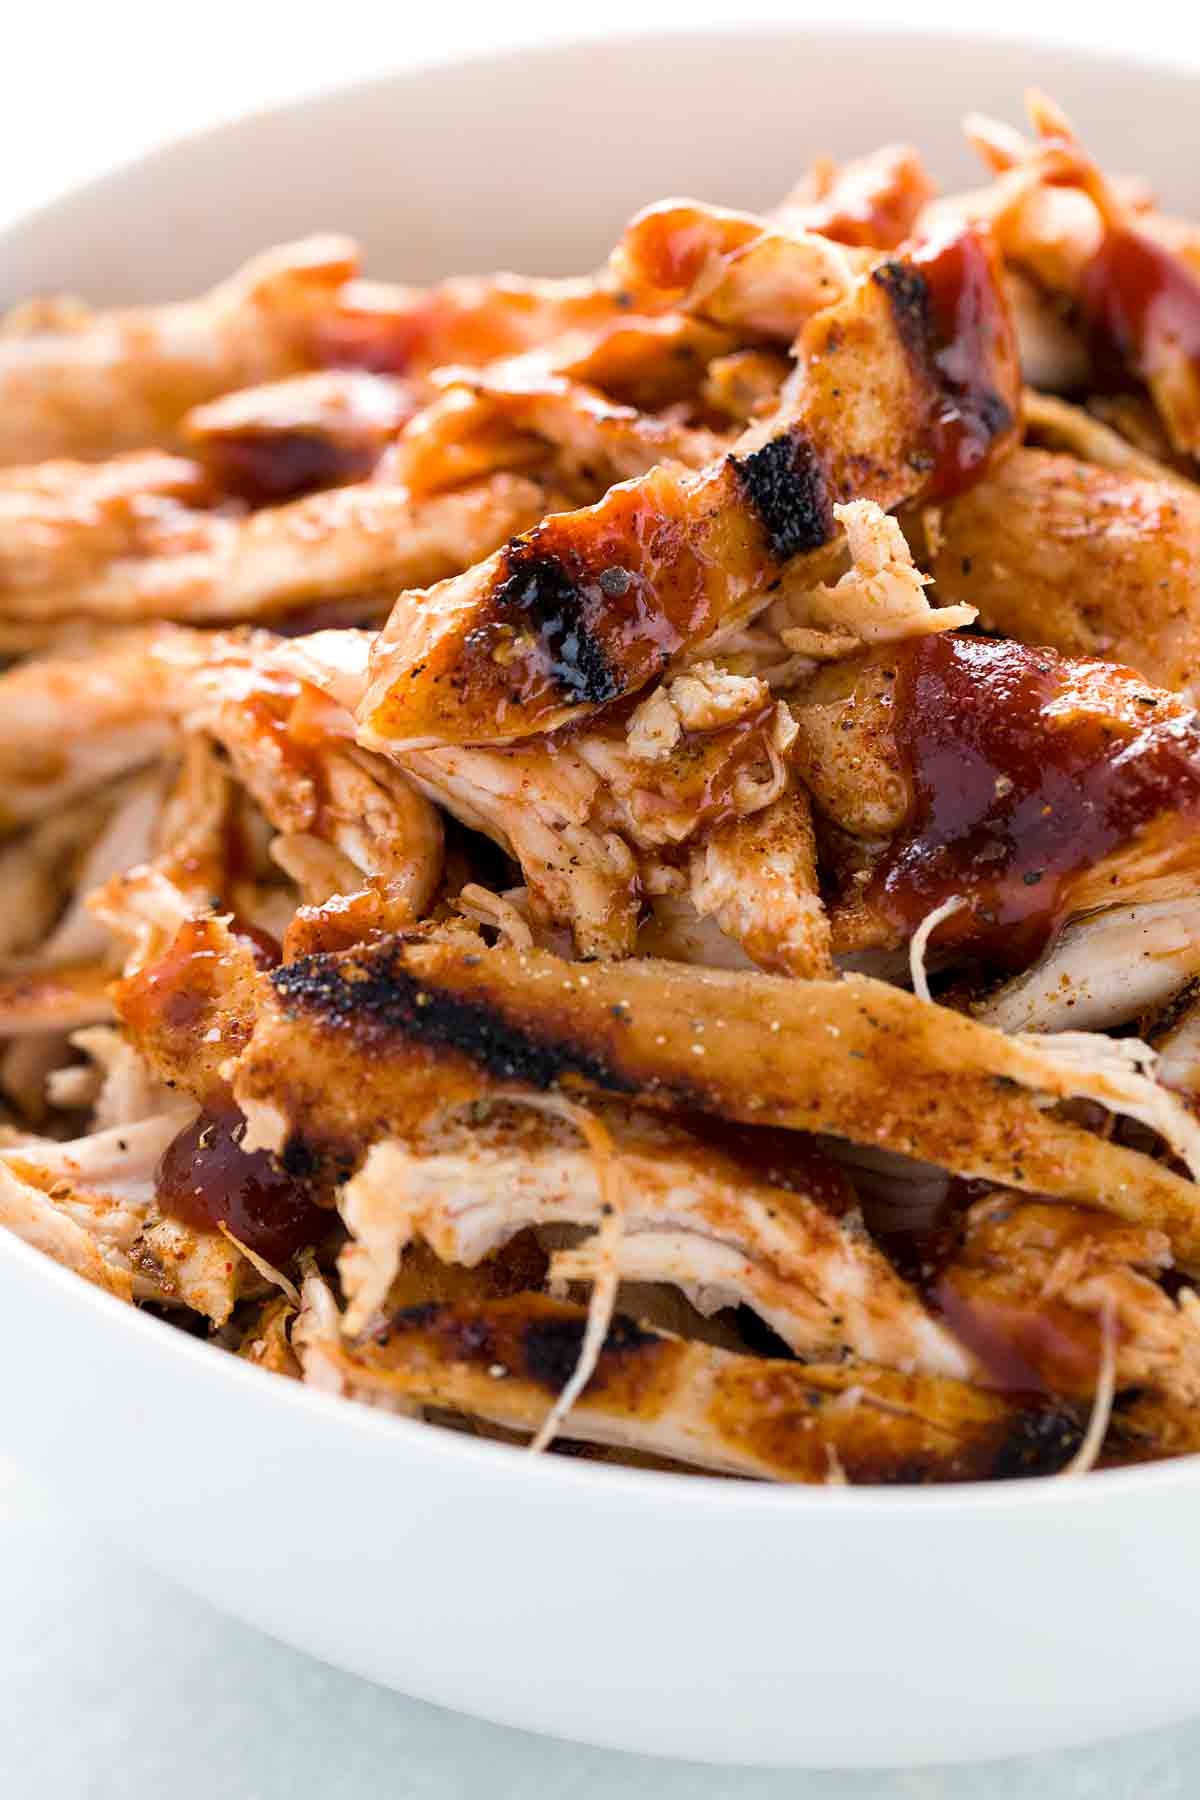 Shredded pieces of barbecued pull chicken mixed with bbq sauce